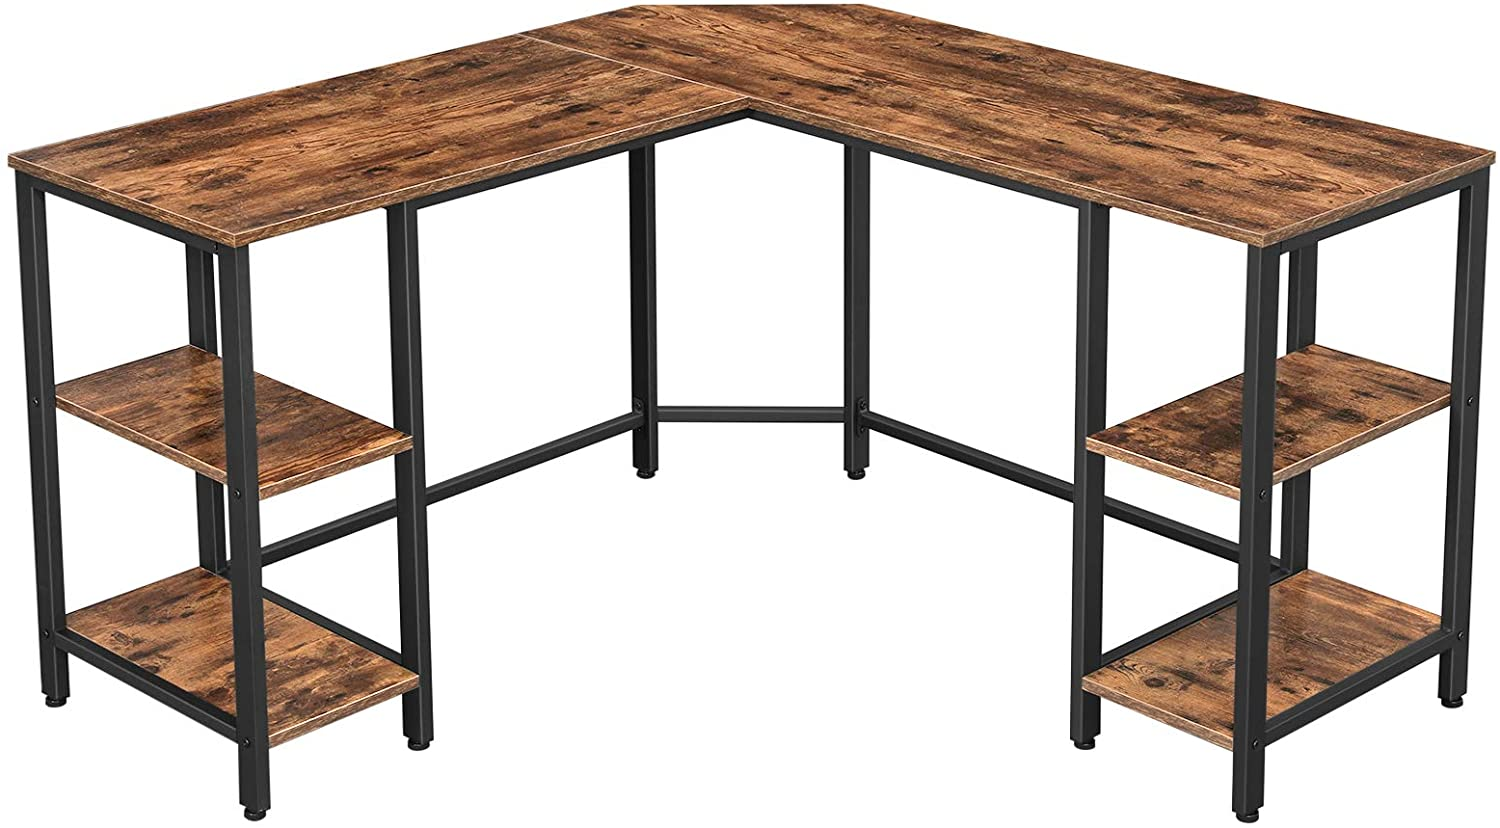 VASAGLE ALINRU L-Shaped Computer Desk, Corner Desk with Storage, 4 Shelves, Spacious Table Top, for Home Office, Industrial Style, Rustic Brown and Black ULWD76X